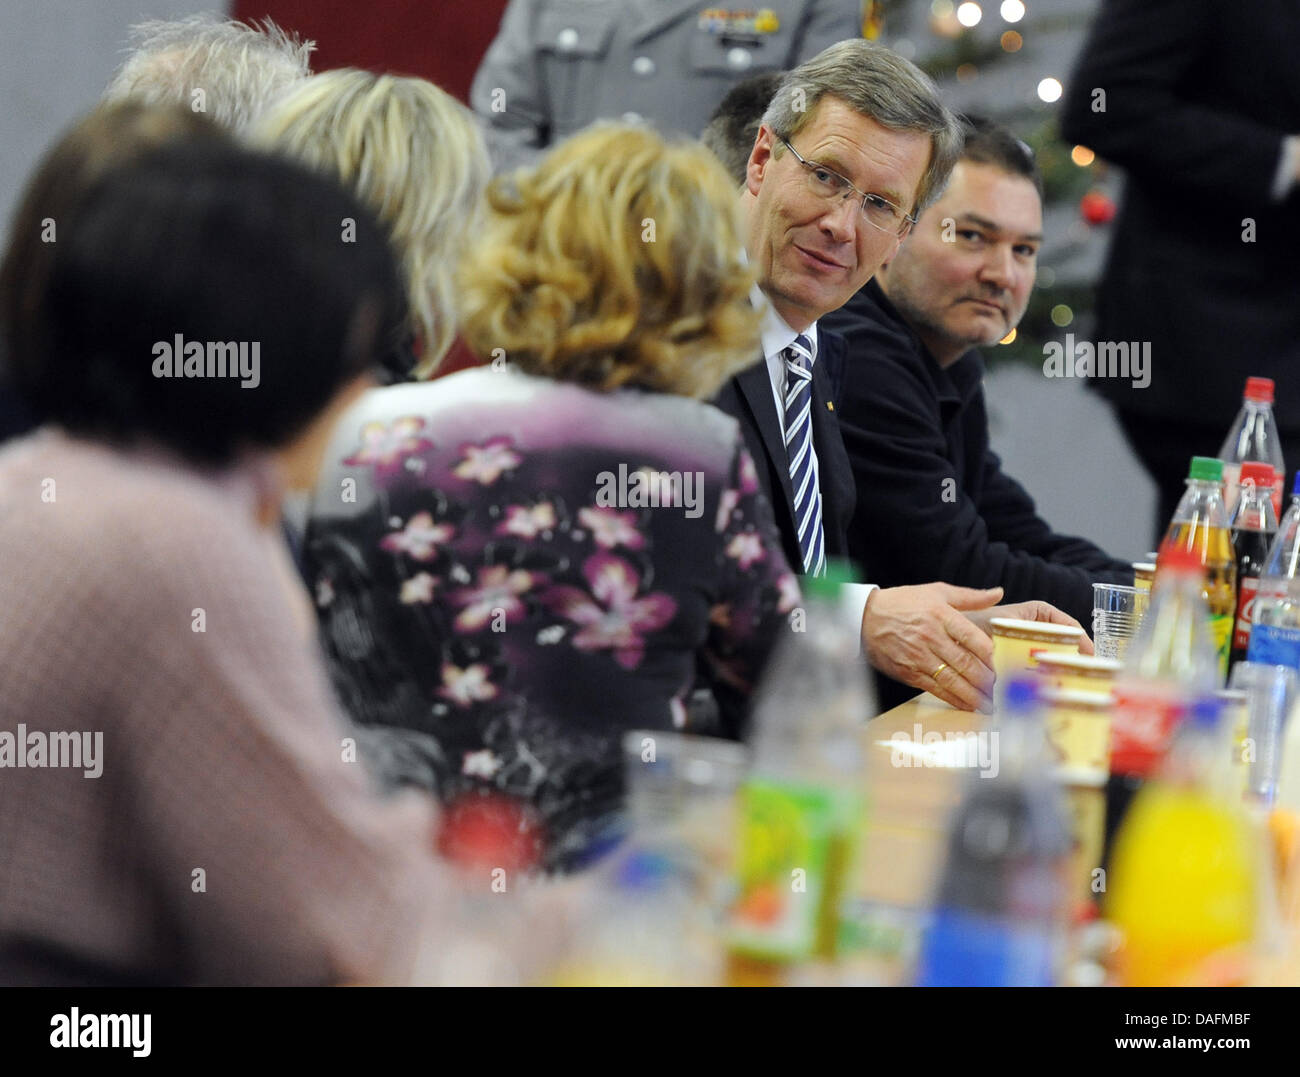 German President Christian Wulff (2-R) talks to soldiers' relatives at the Julius-Leber Barracks in Berlin, Germany, - Stock Image